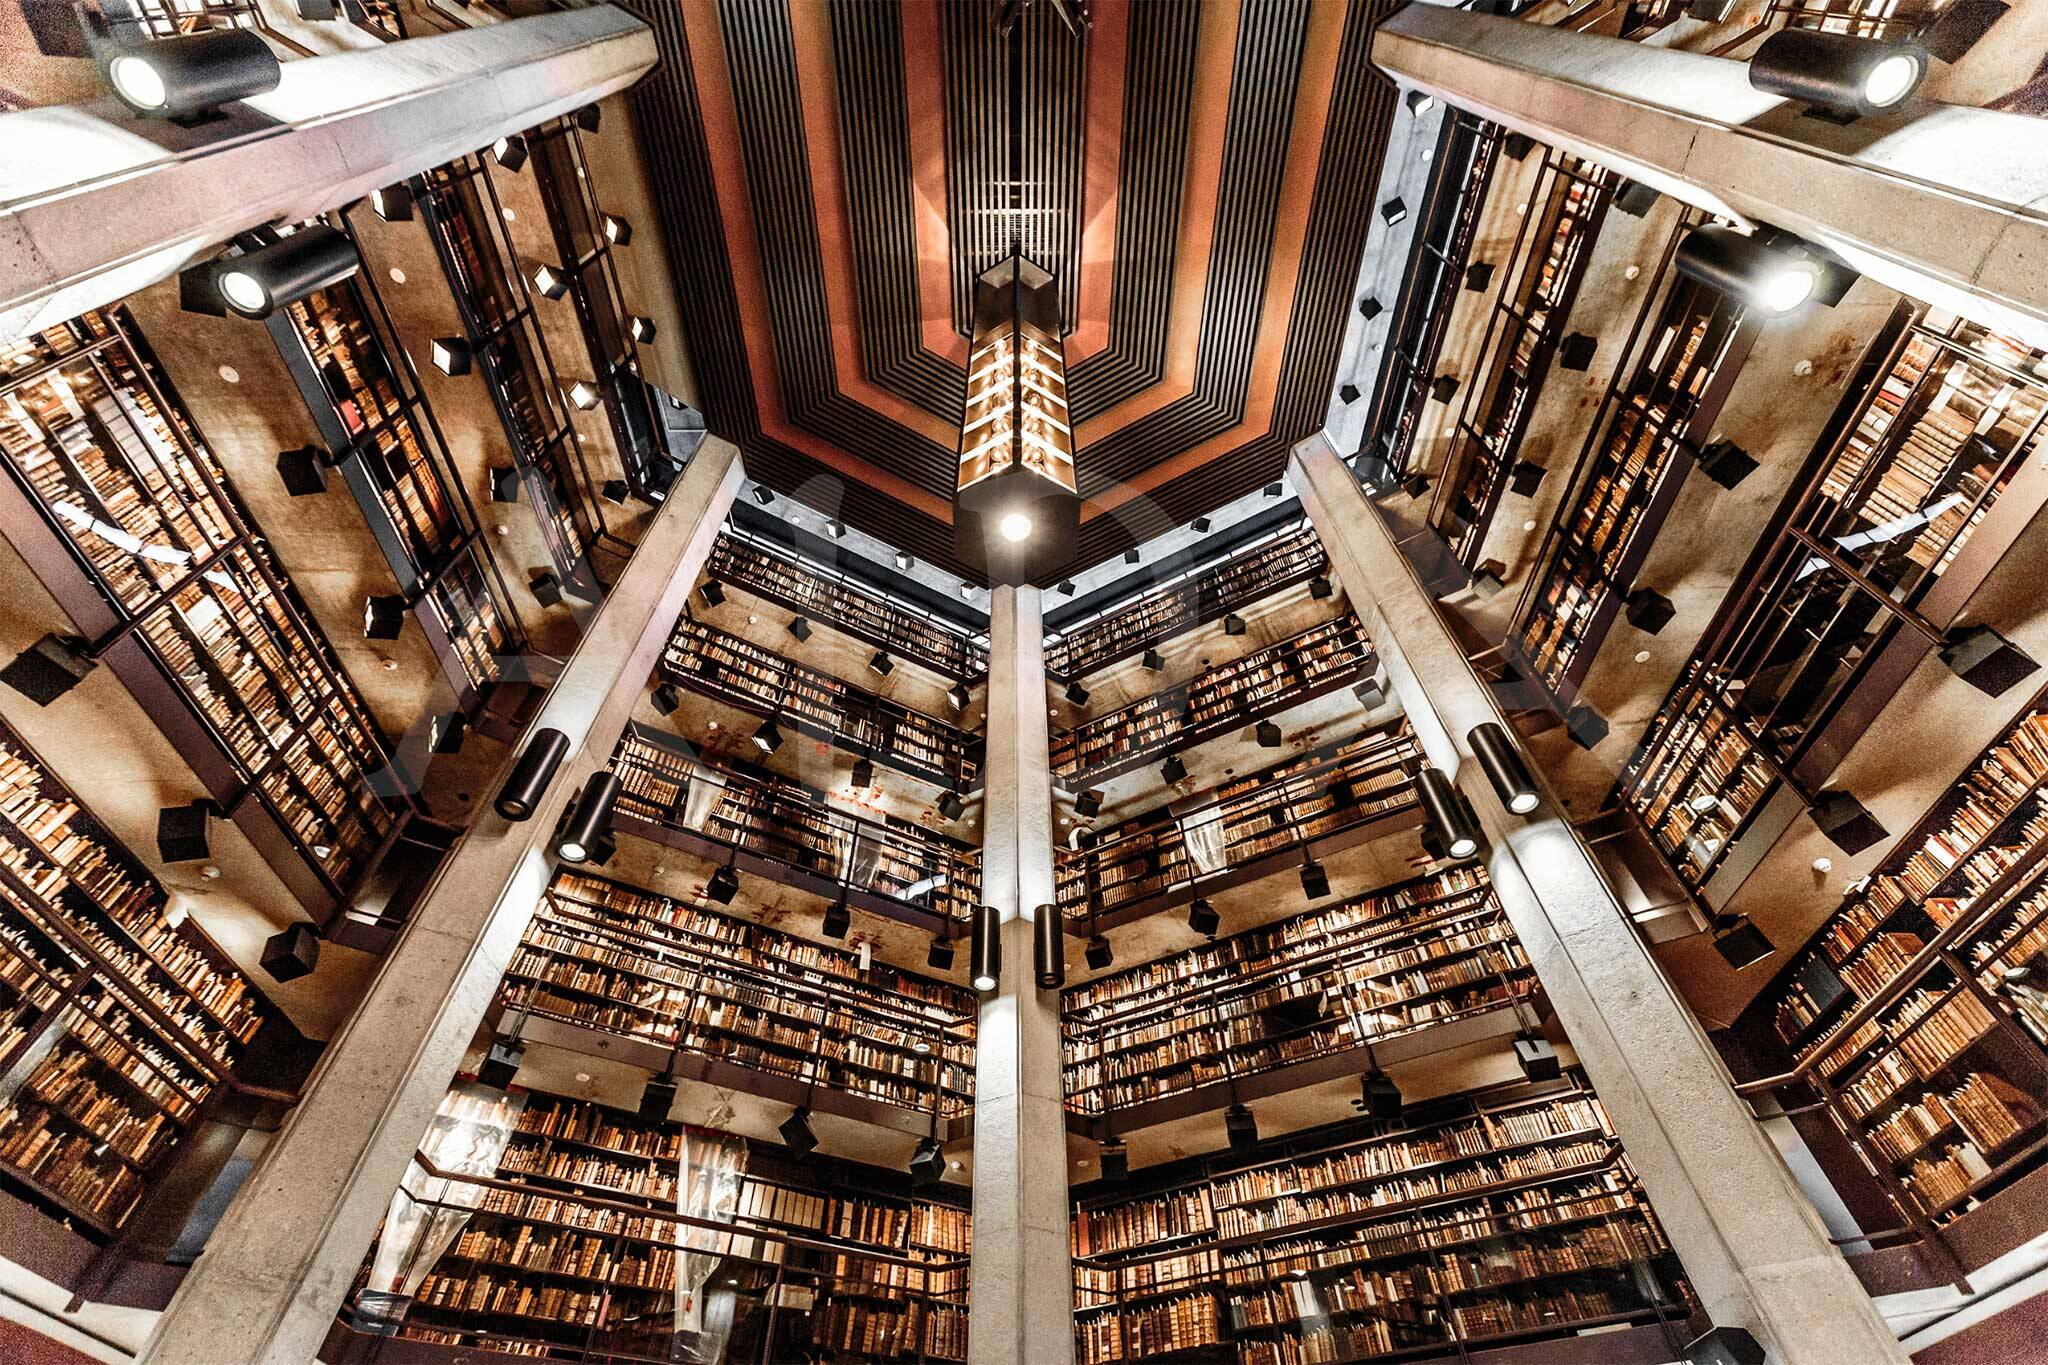 The Thomas Fisher Rare Book library